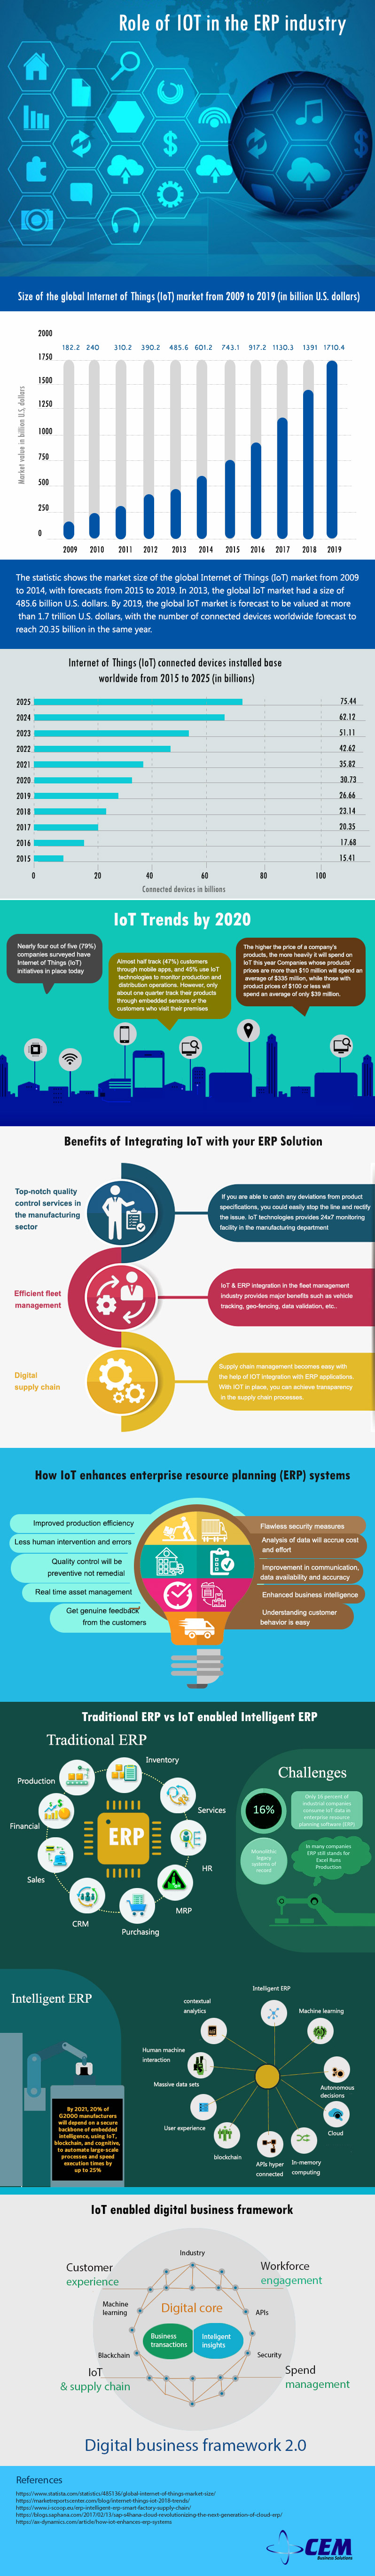 Role of IOT in the ERP Industry